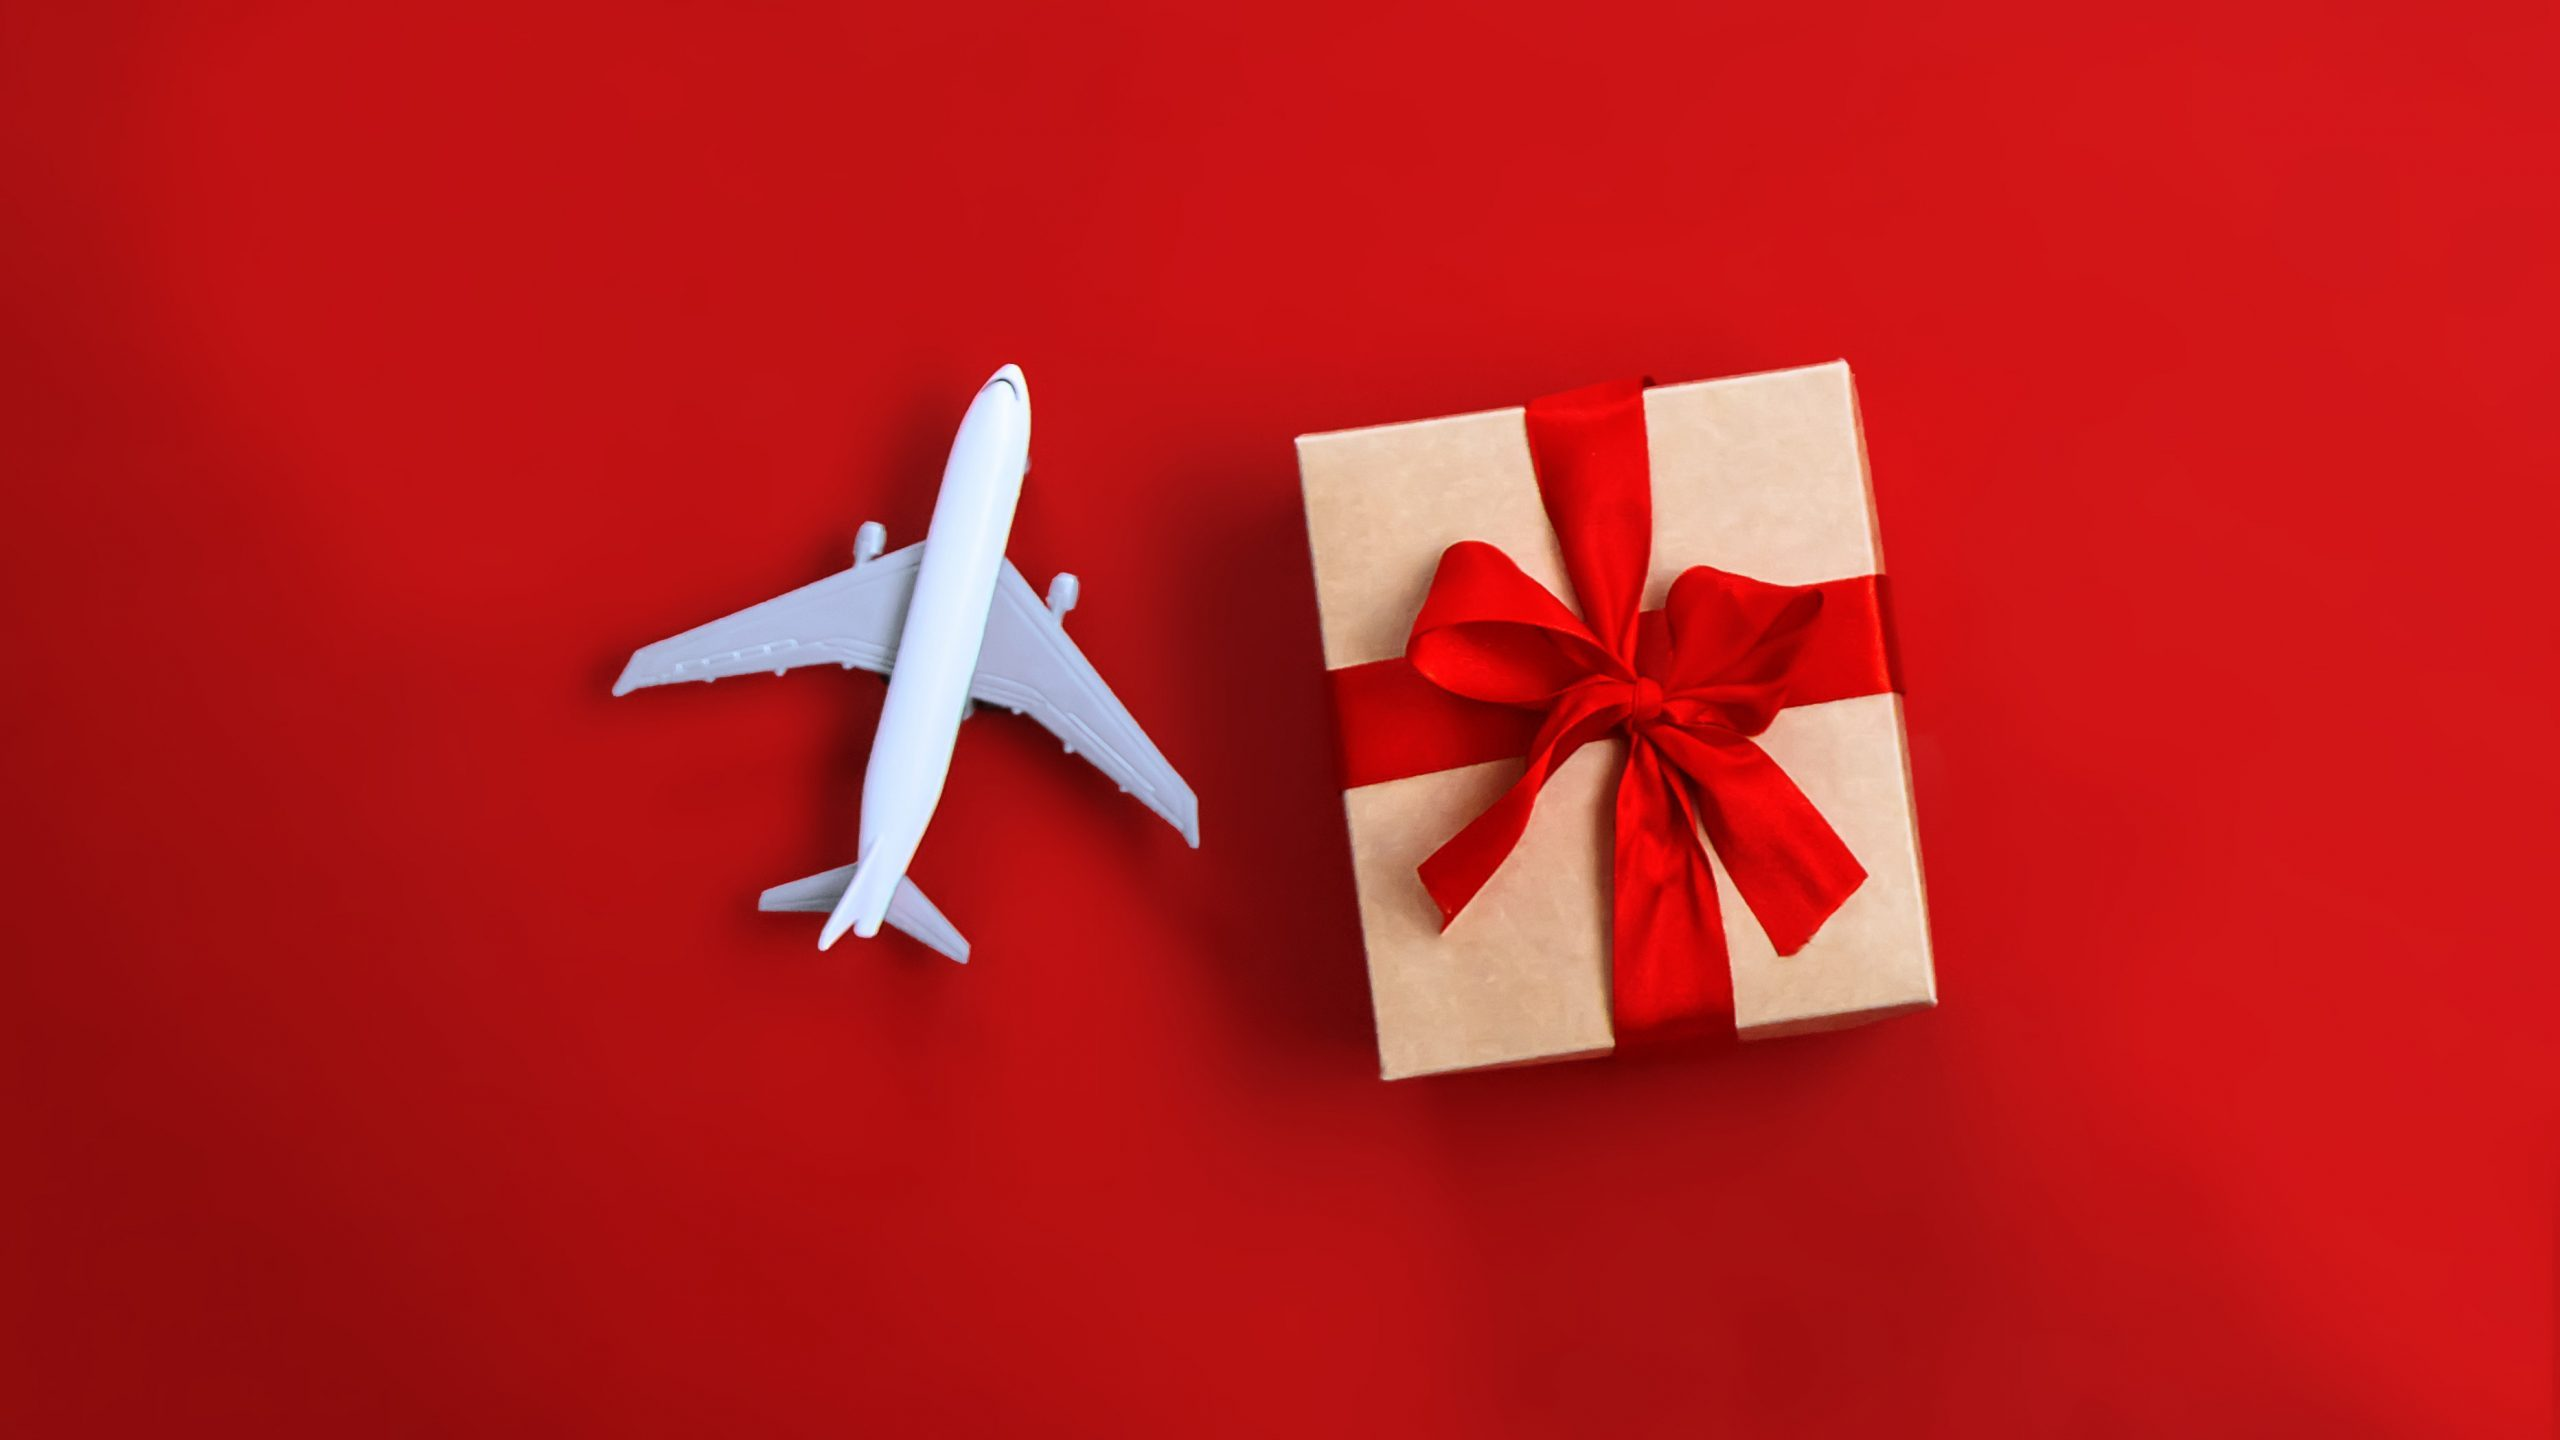 toy plane and gift on red background